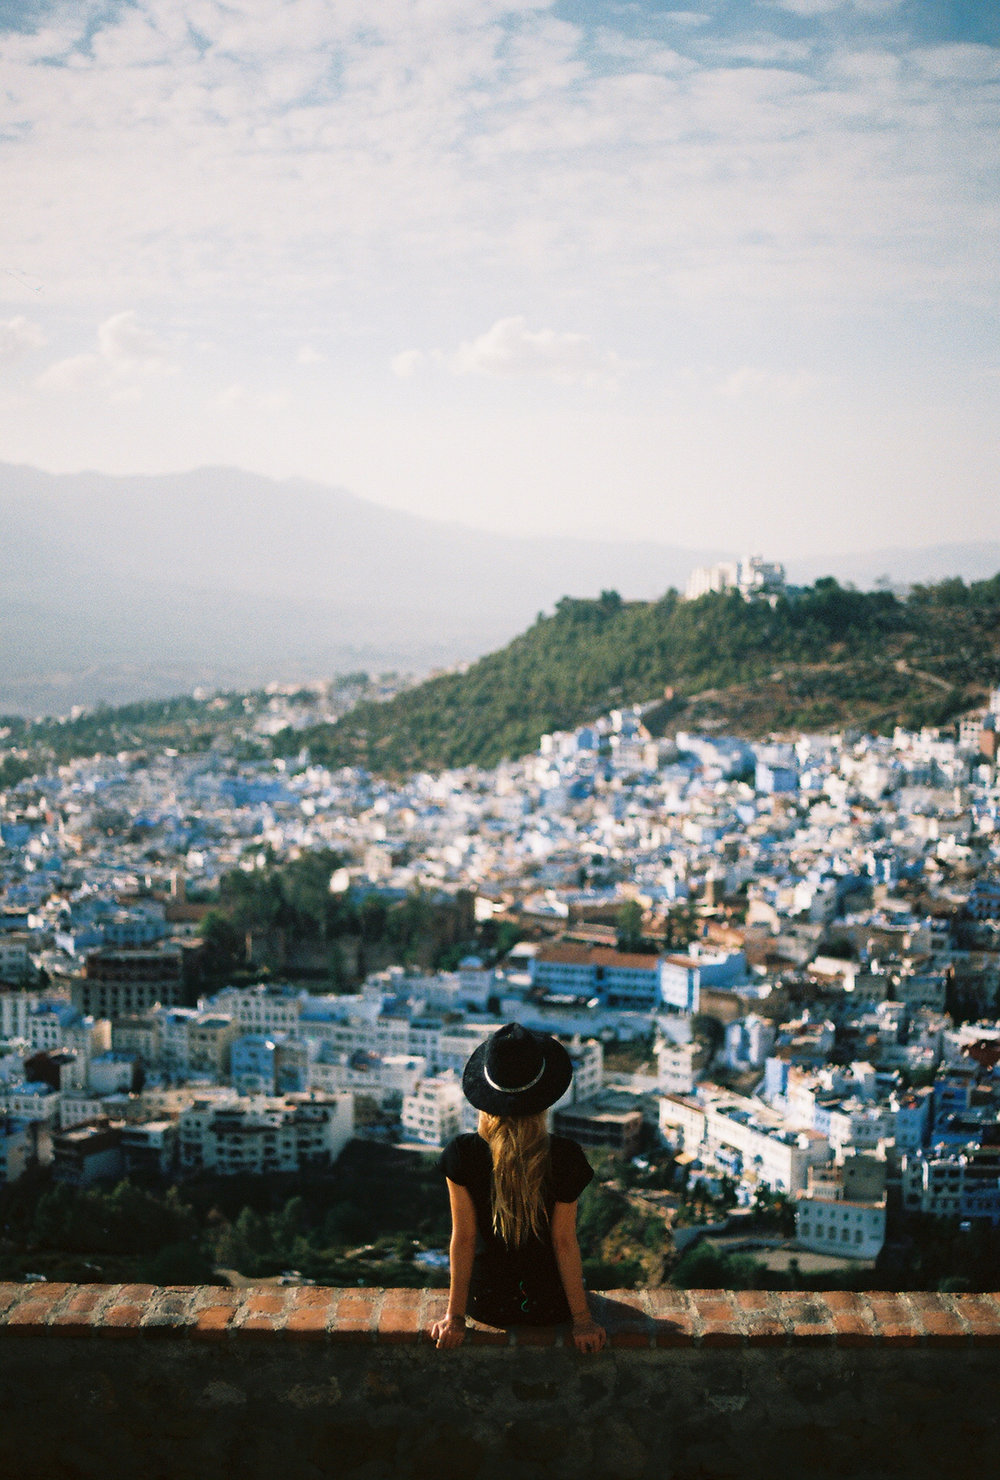 Chefchaouen, Morocco, 35mm